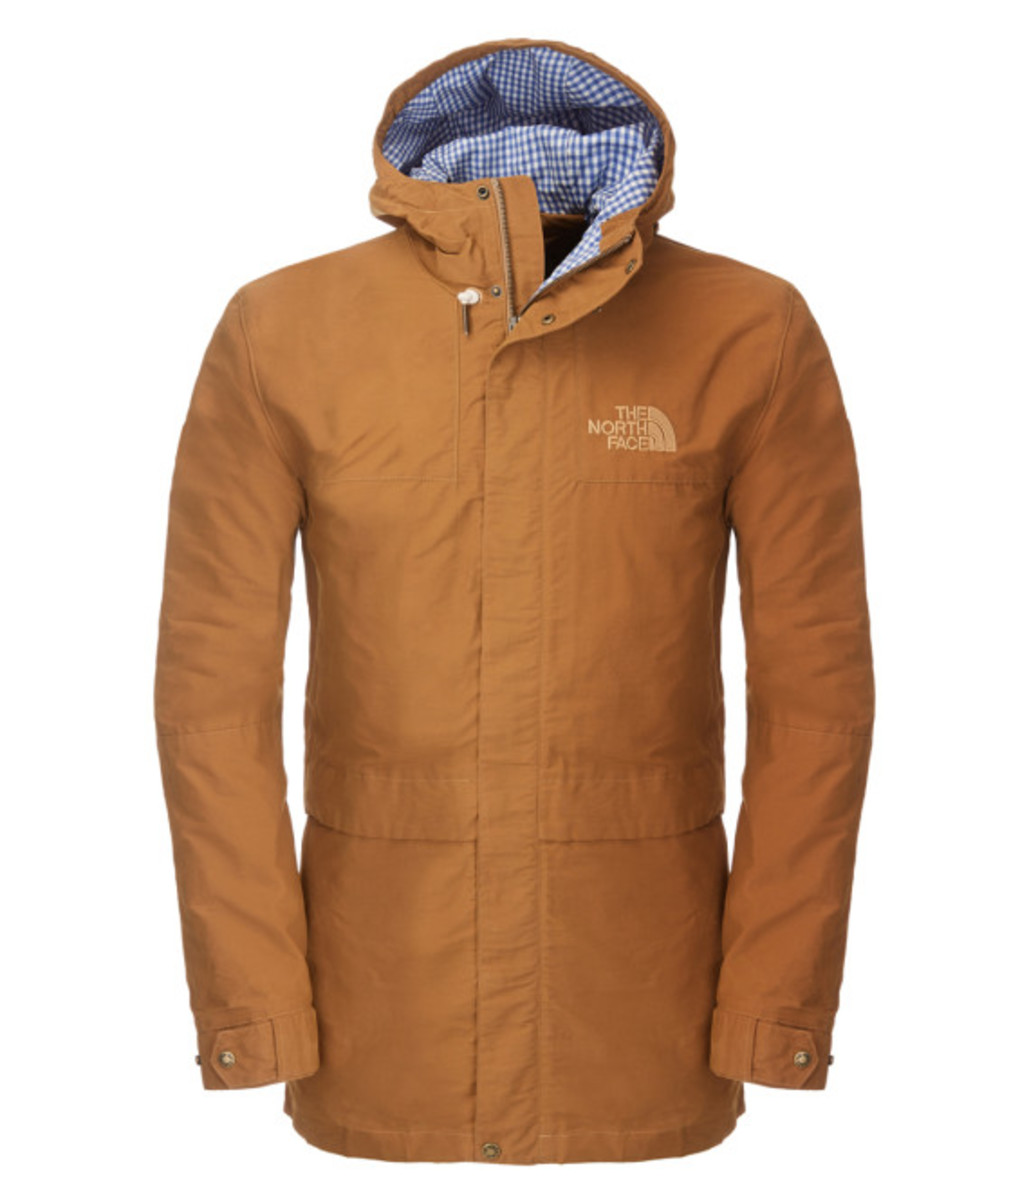 the-north-face-mountain-jacket-03